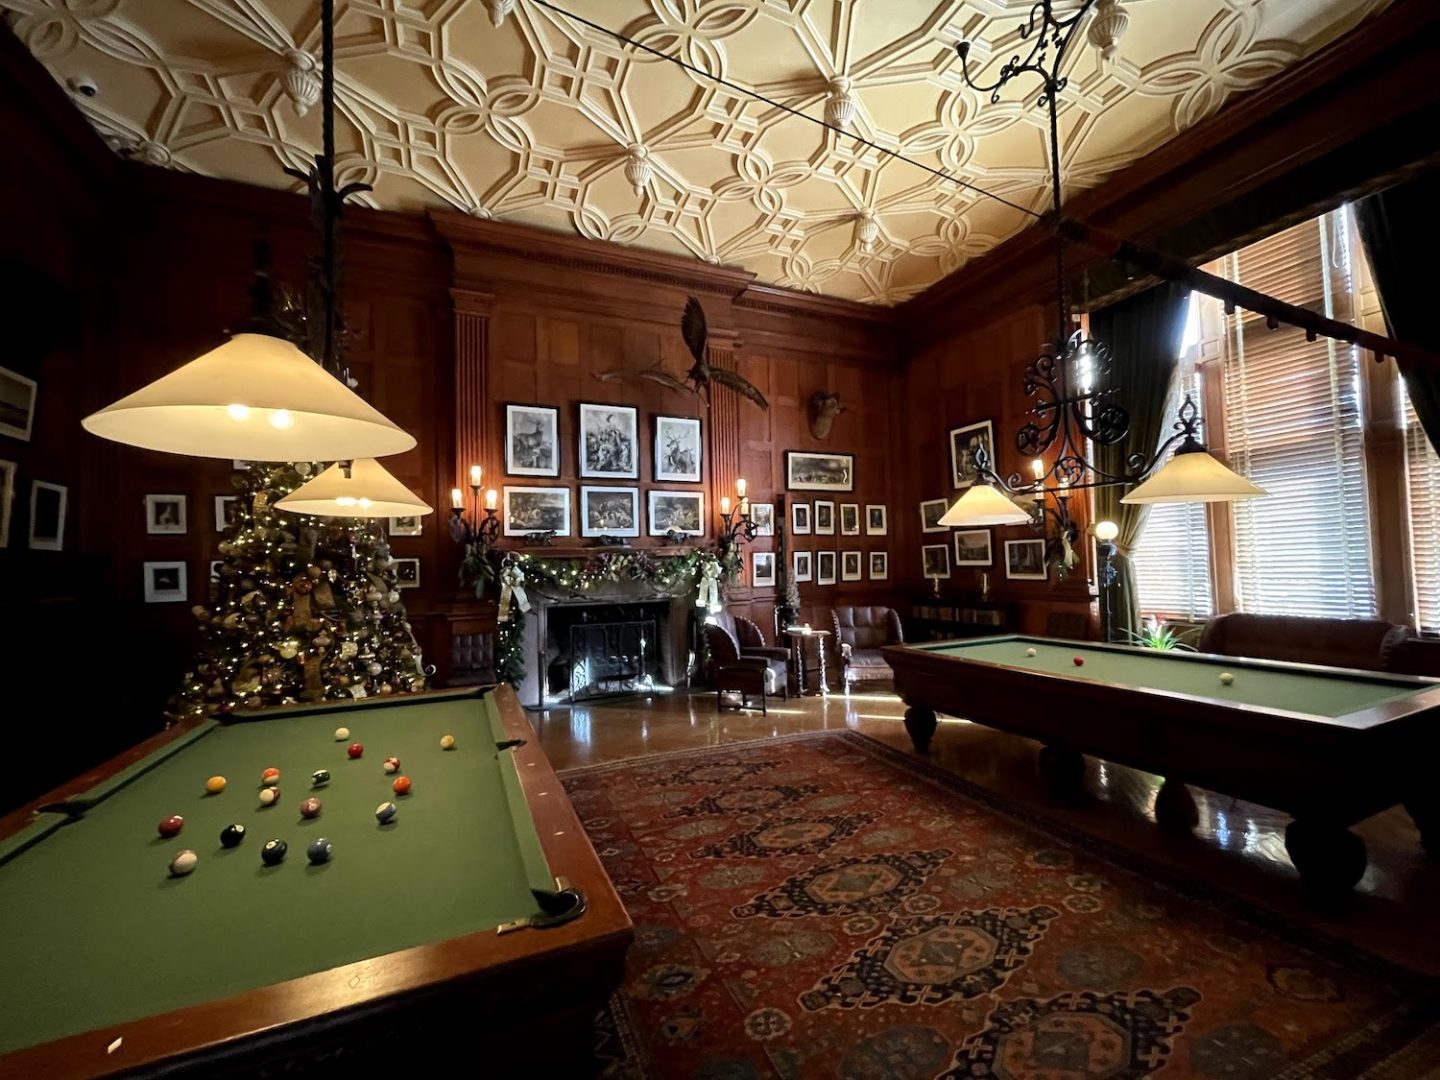 Billiards room at the Biltmore House